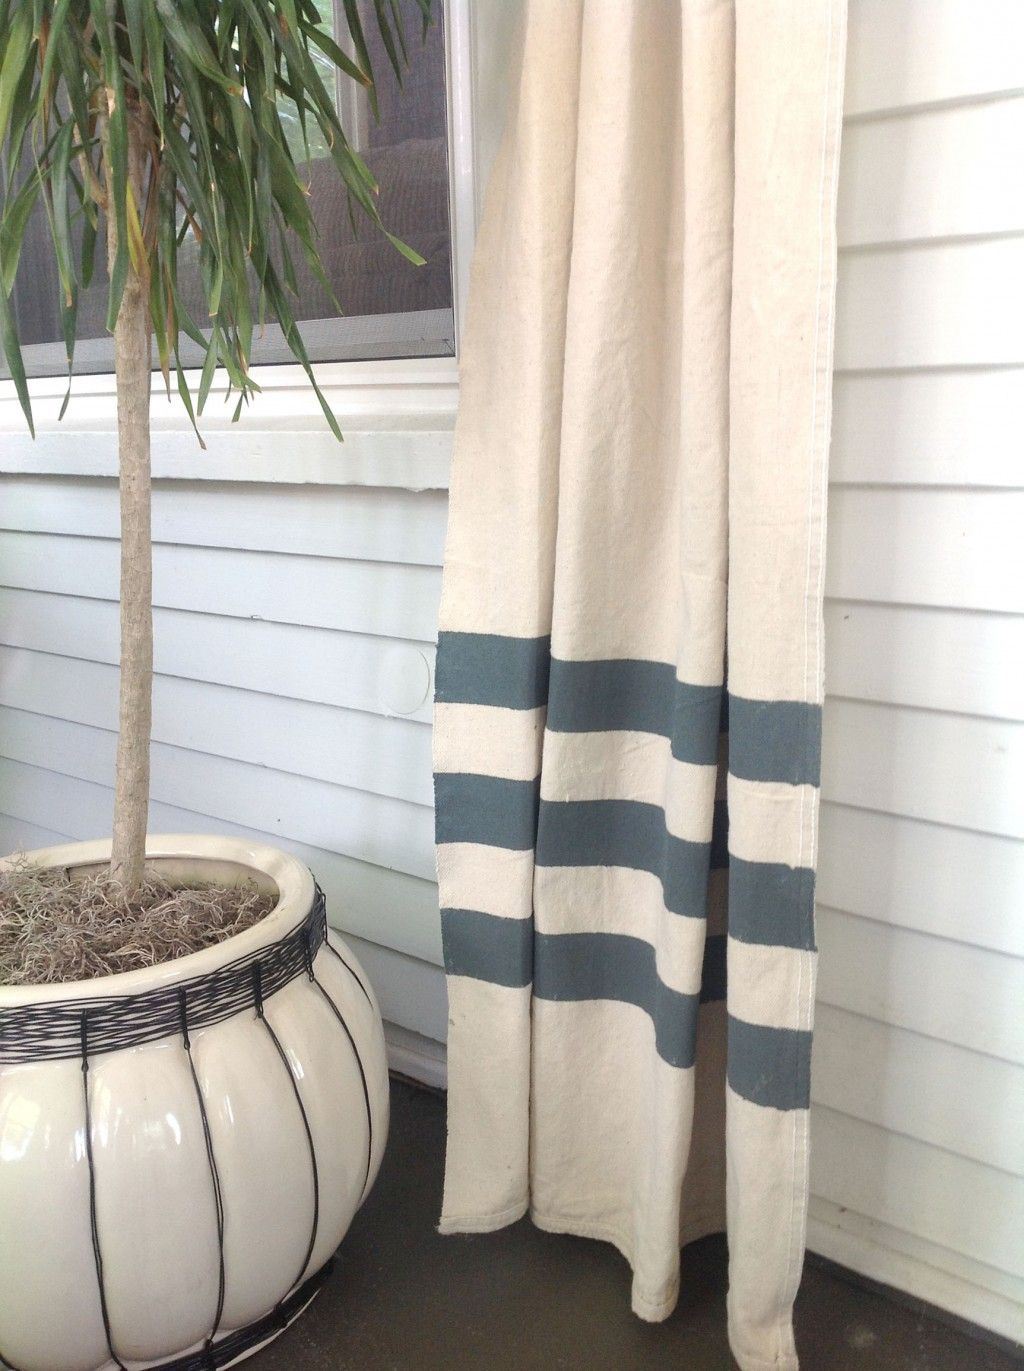 Diy Drop Cloth Curtains Masculine Diy Drop Cloth Curtains With A Twist And Diy Drop Cloth